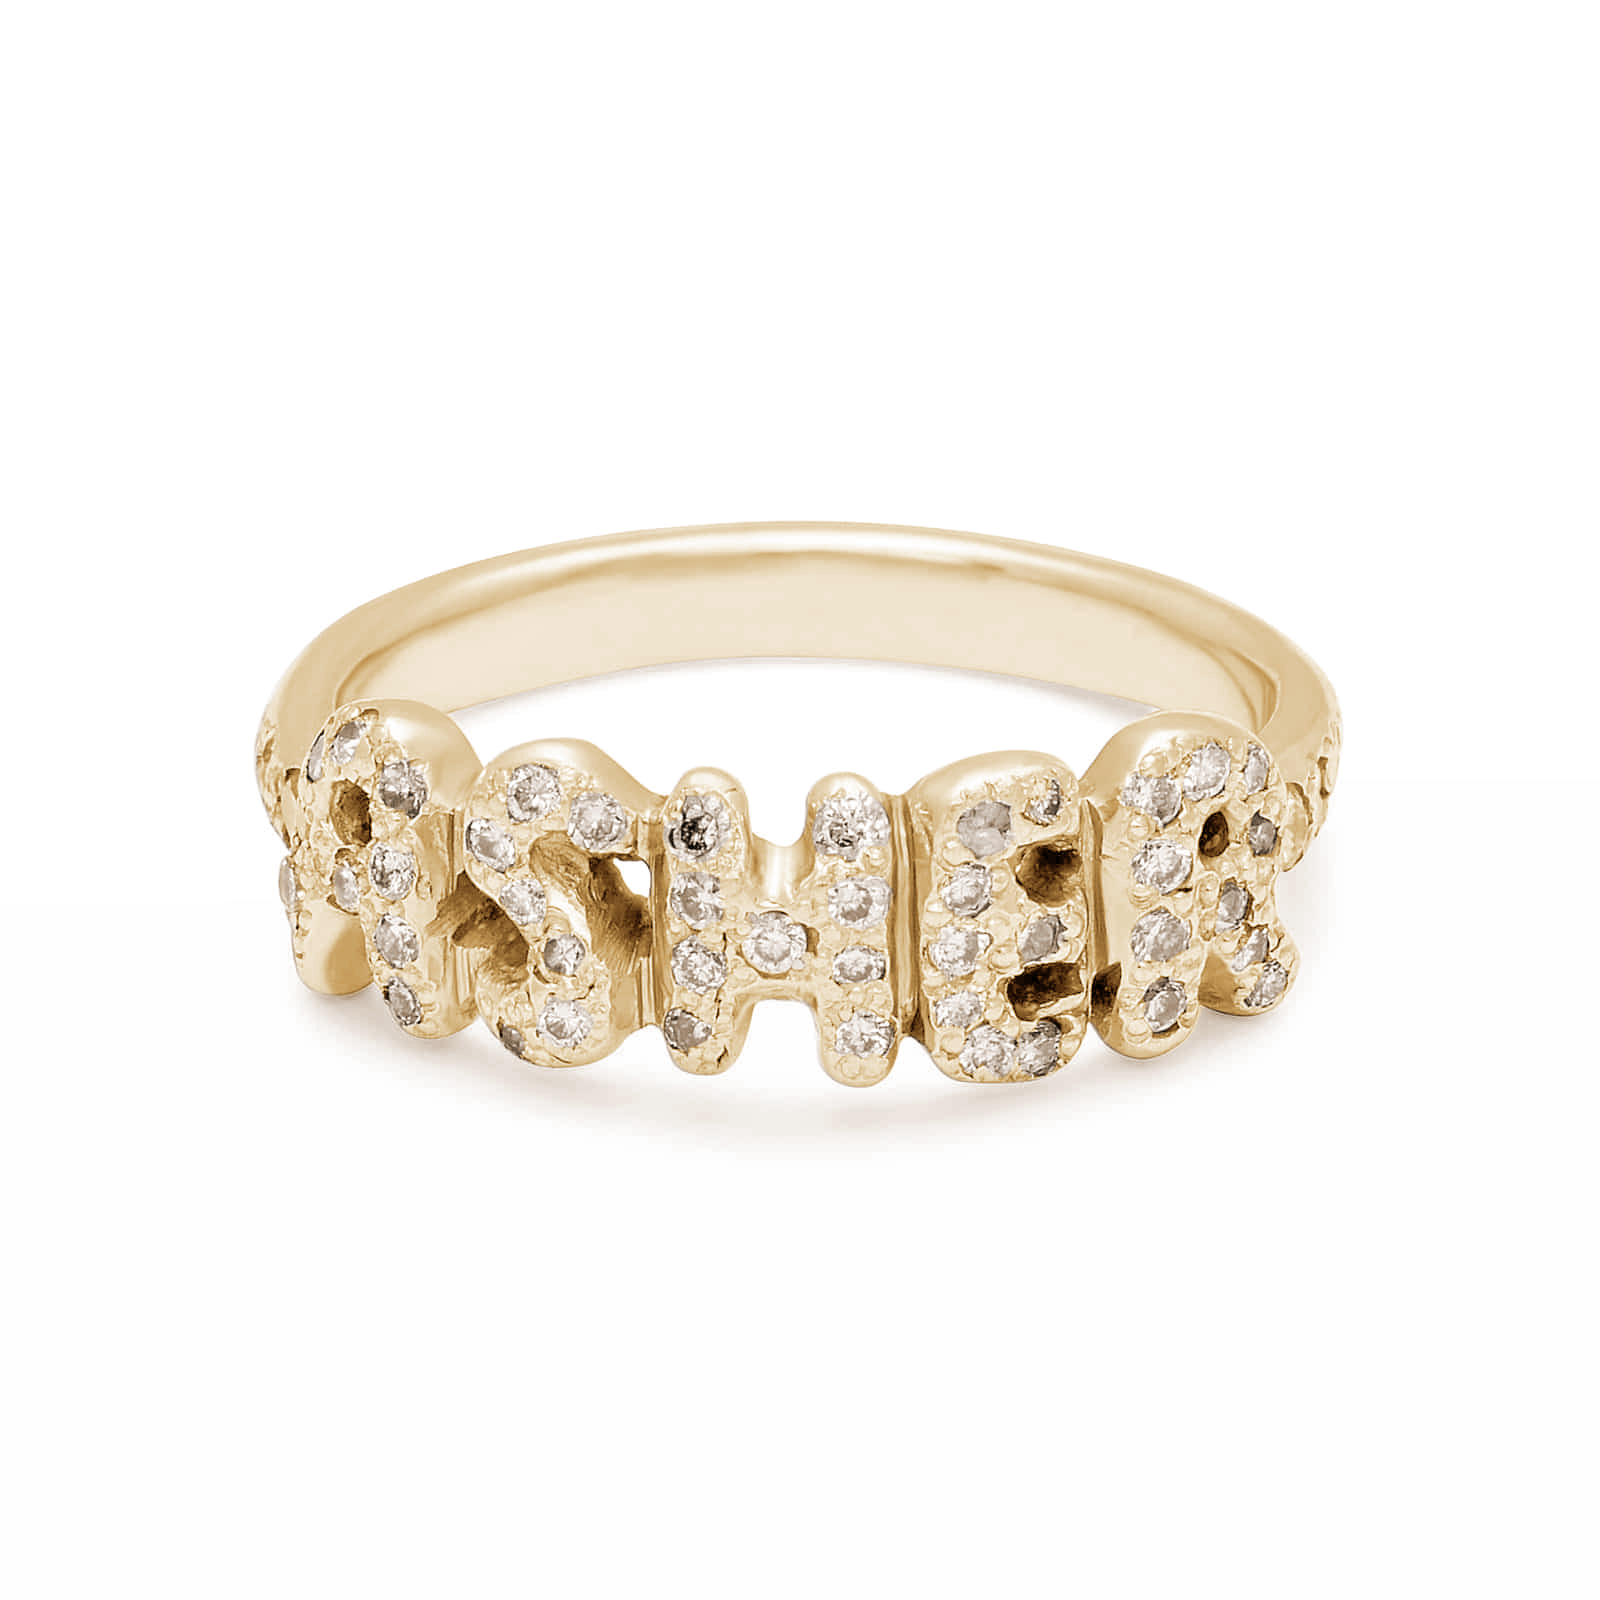 18k Yellow Gold White Diamond Encrusted Name Ring